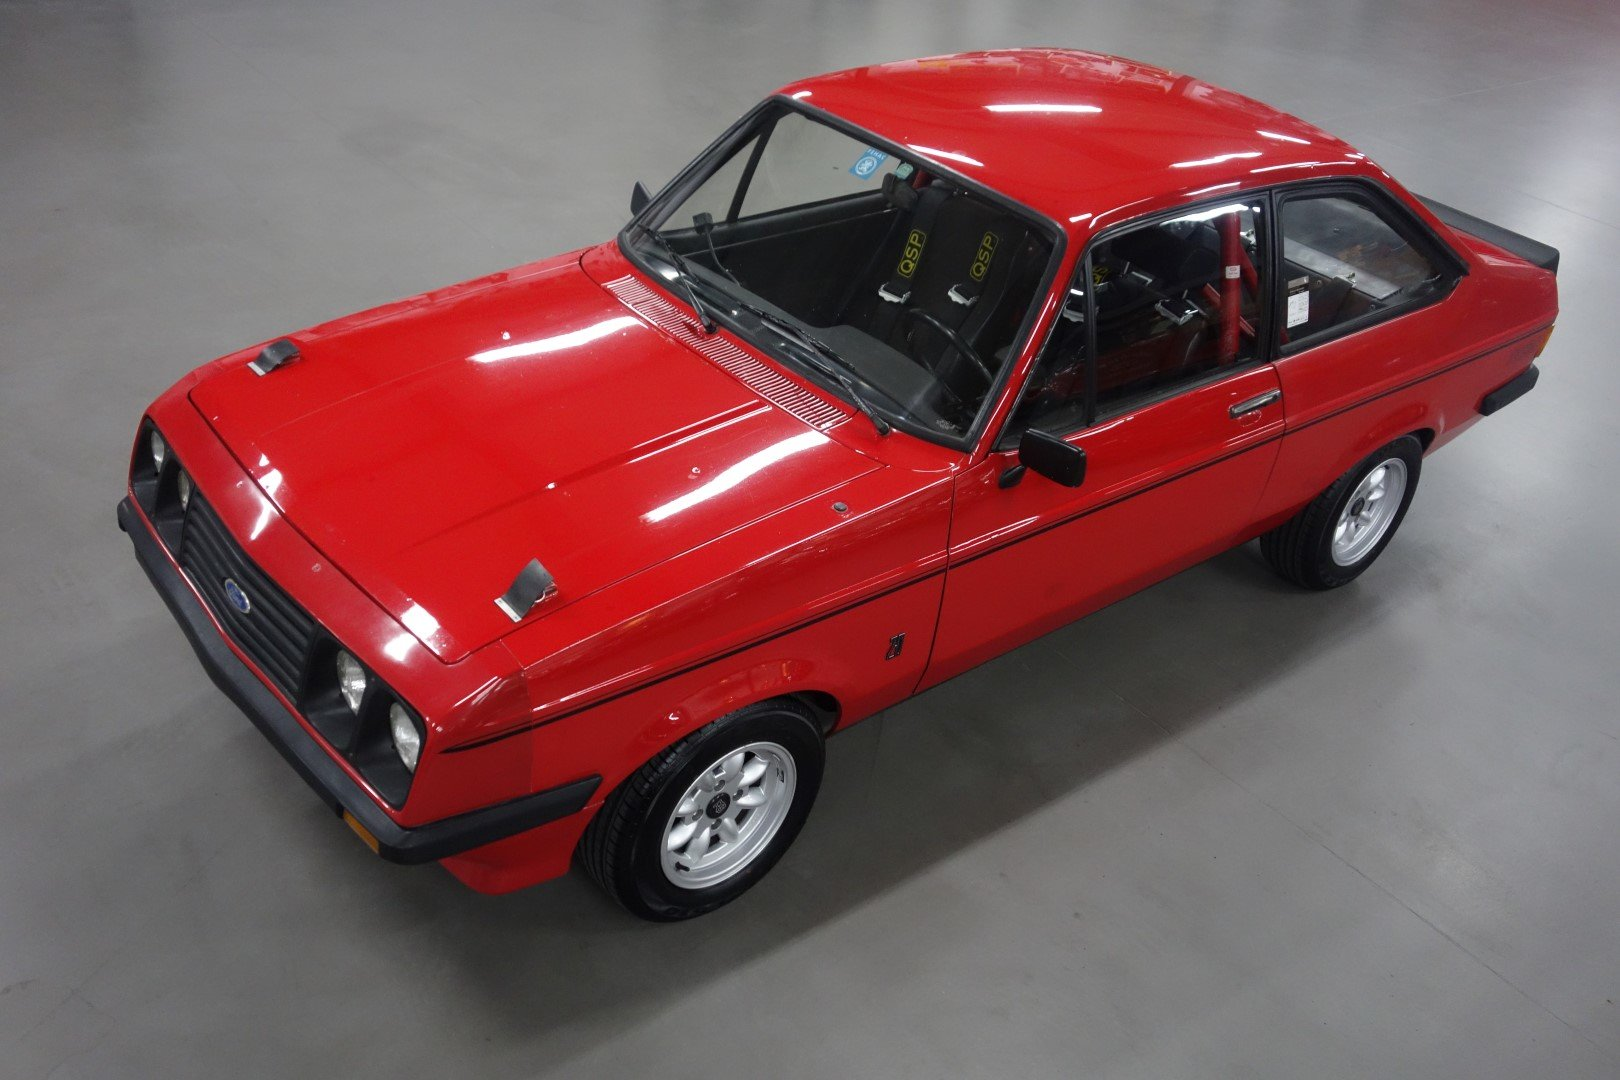 1977 RS2000 MK 2 Very original, nice patina, opportunity, For Sale (picture 1 of 6)